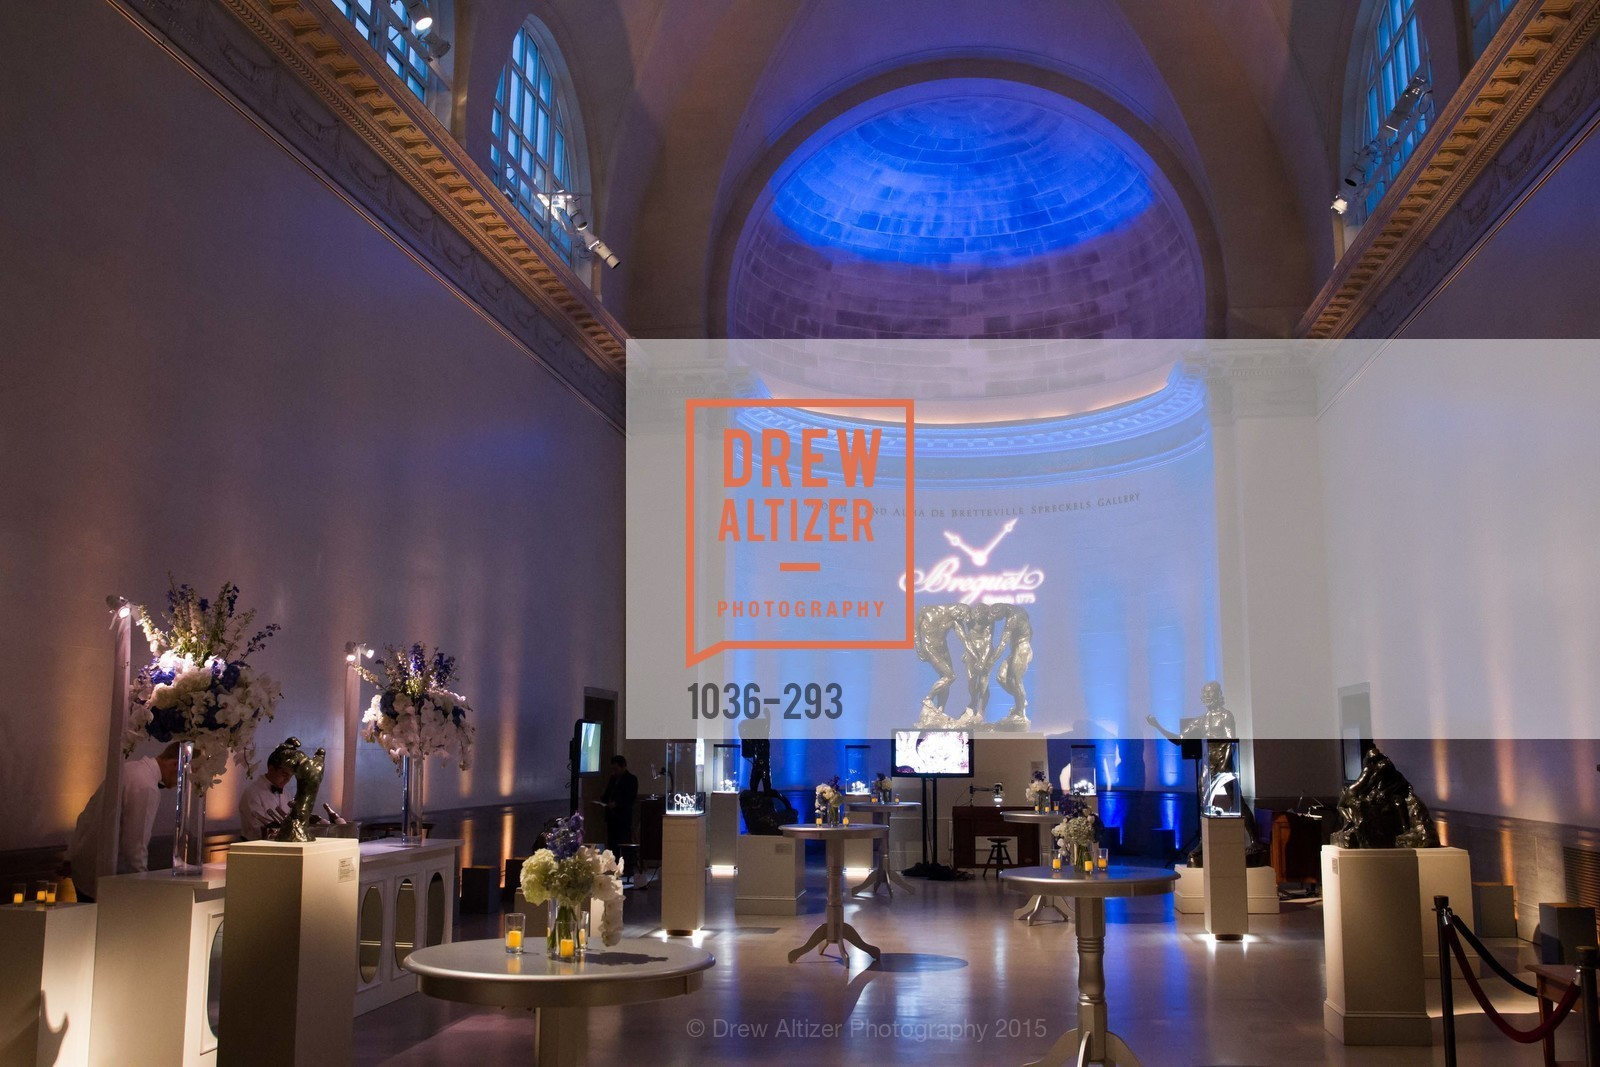 Atmosphere, The Breguet Exhibition 2015, Legion of Honor, September 16th, 2015,Drew Altizer, Drew Altizer Photography, full-service event agency, private events, San Francisco photographer, photographer California